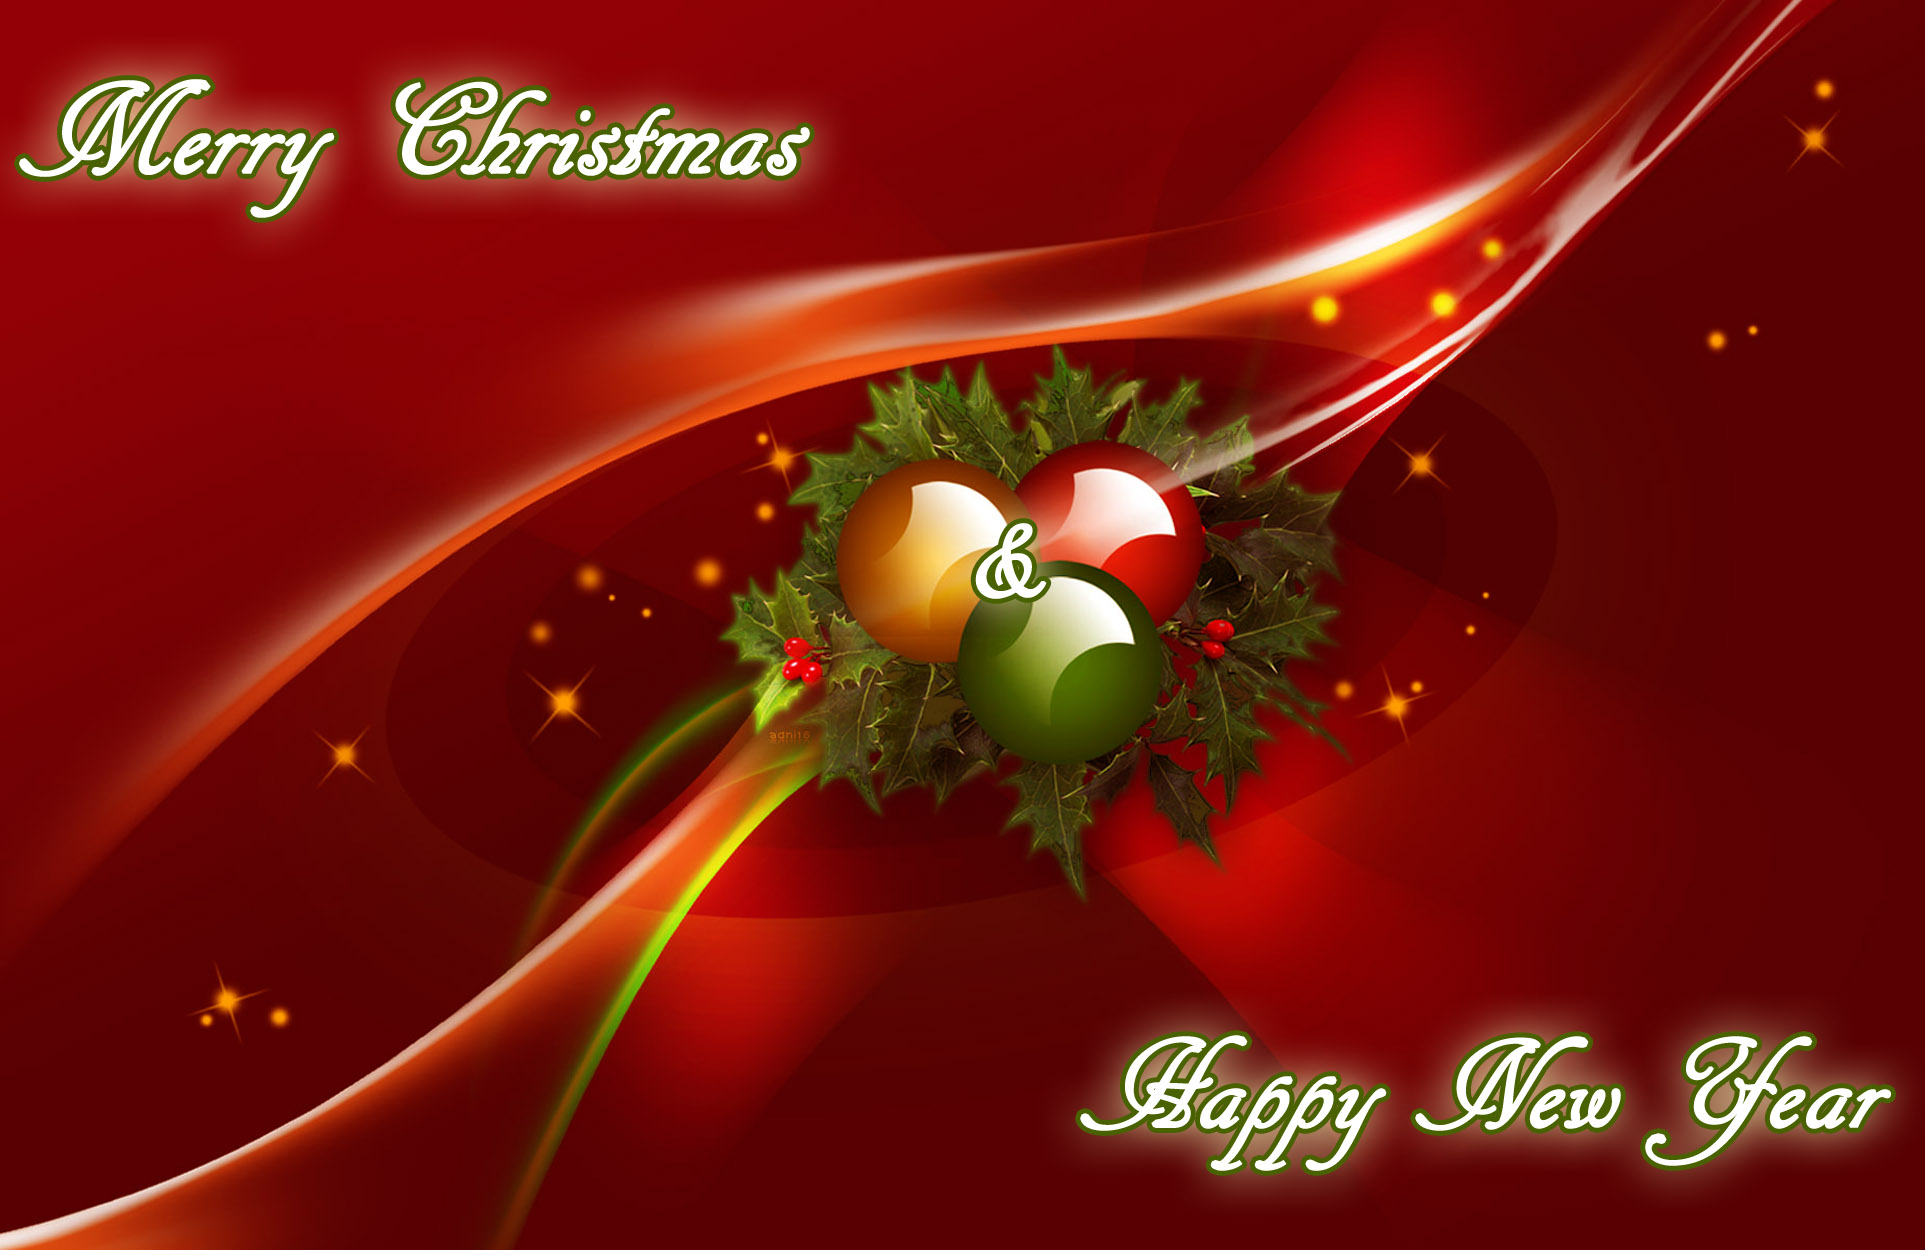 New year 2014 christmas 2013 wallpaper greeting e cards travel new year 2014 christmas 2013 wallpaper greeting e cards m4hsunfo